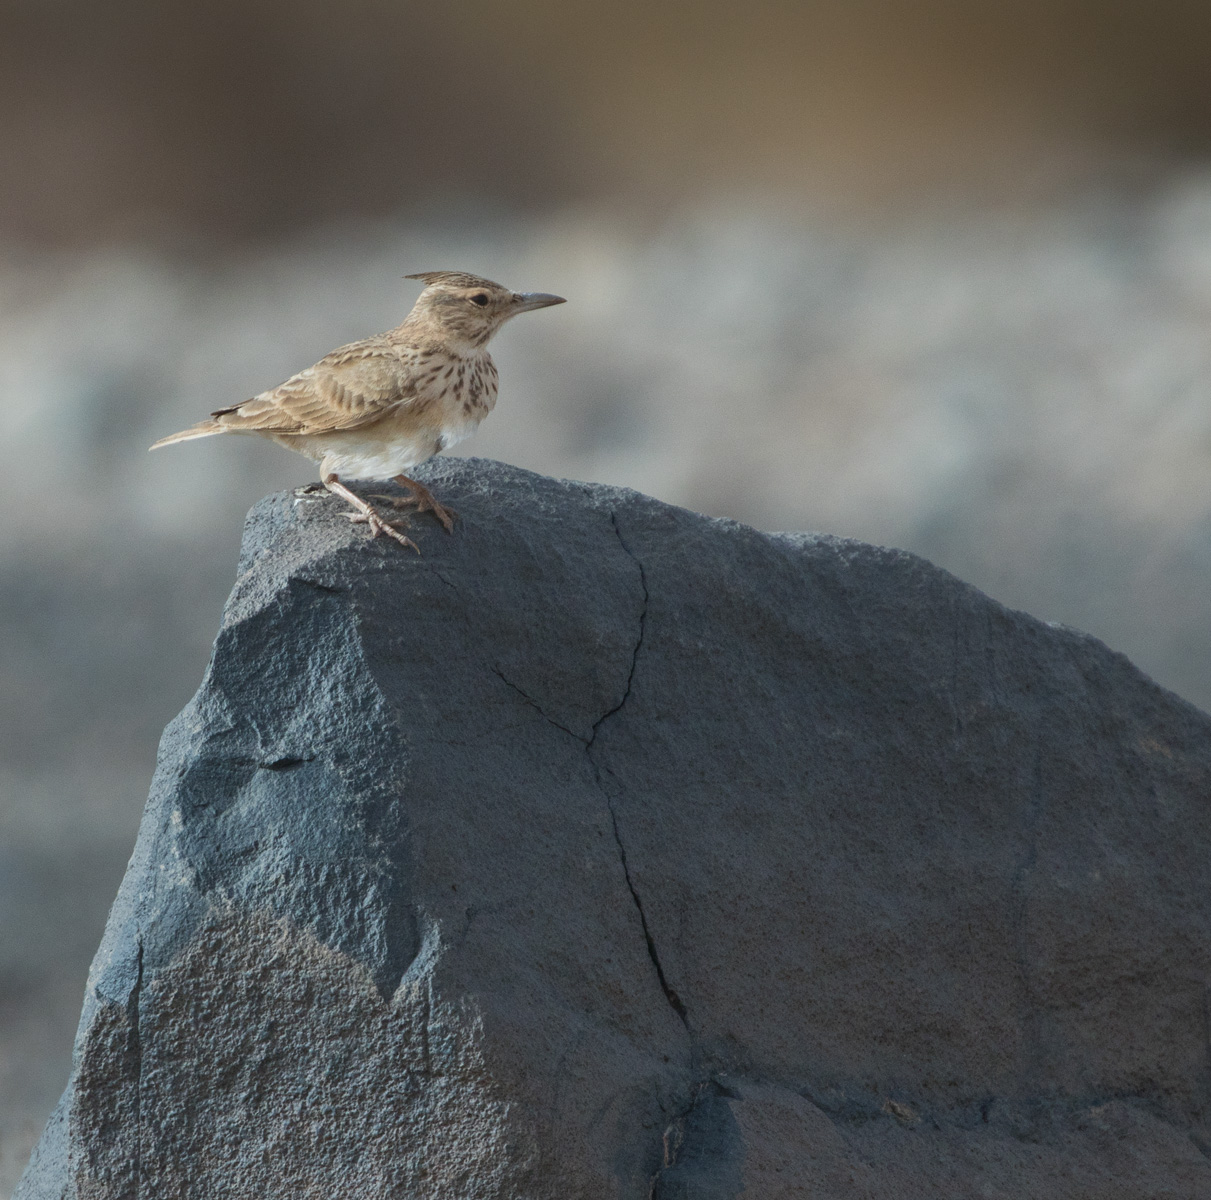 'Long-billed' Crested Lark, probably belonging to the senegallensis group of Galerida cristata, Aousserd, western Sahara, Morocco, 21 Jan. 2018 (Lars Petersson).